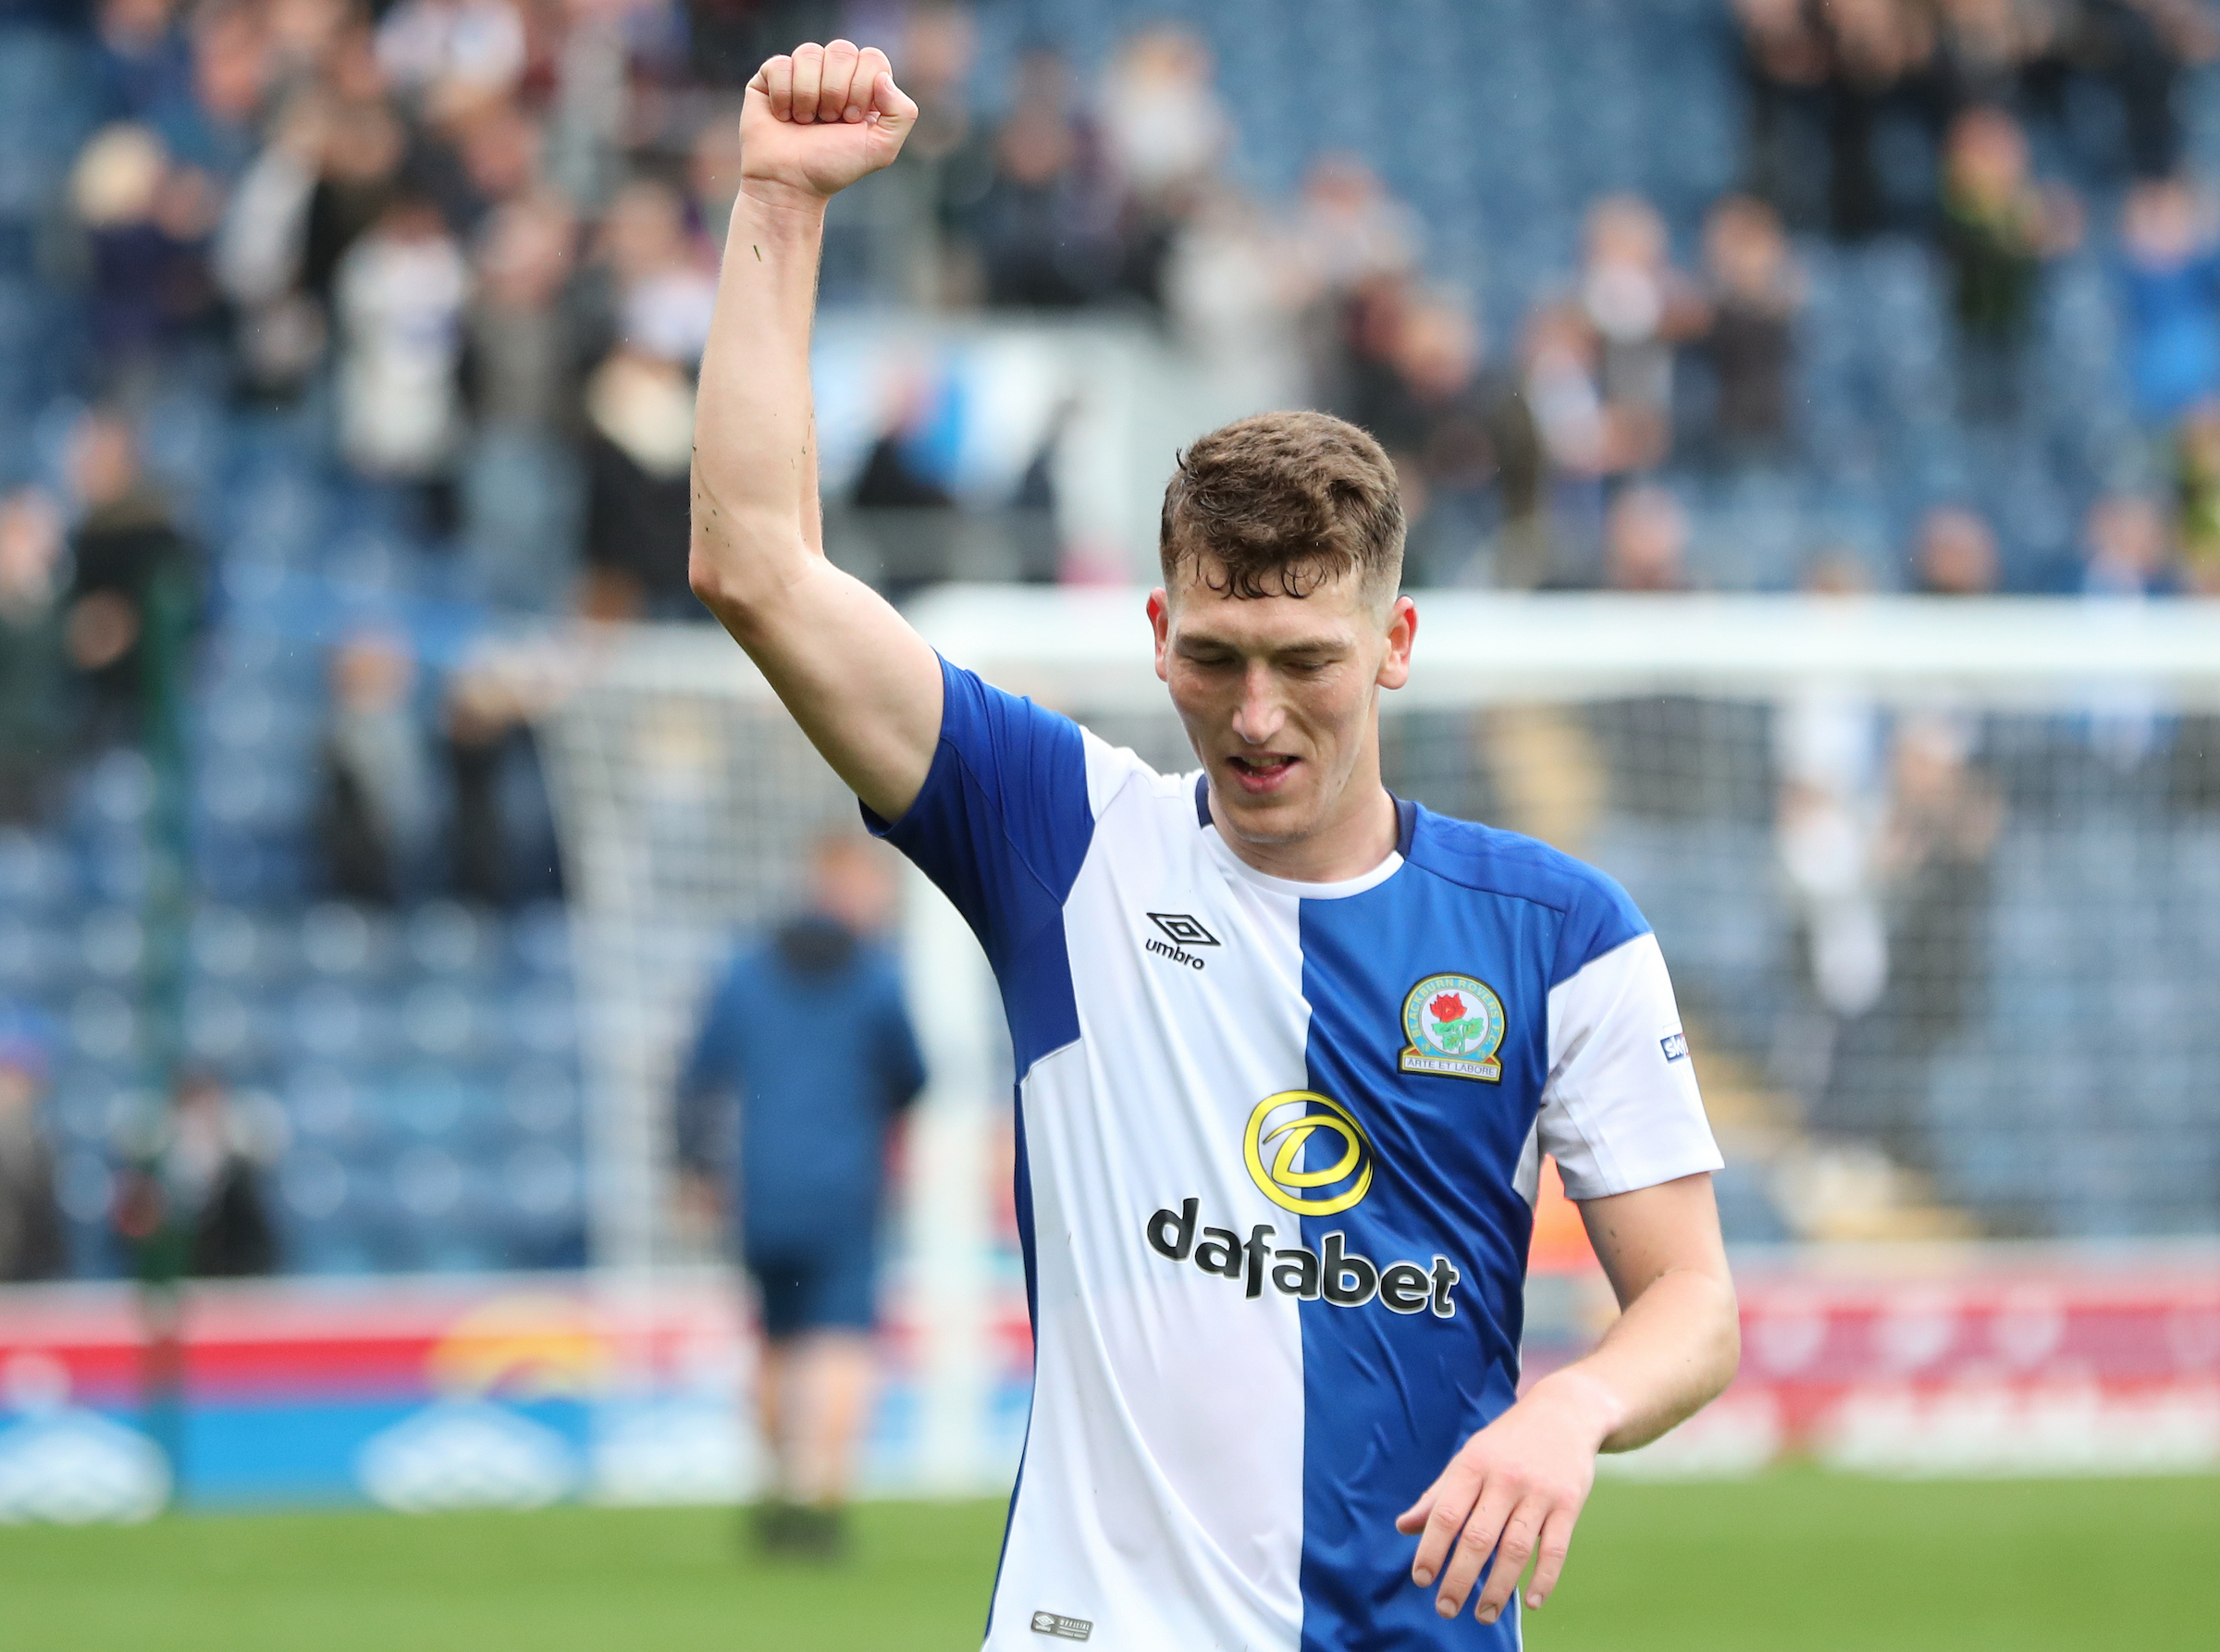 Rovers midfielder Richie Smallwood and manager Tony Mowbray are nominated for the League One player and manager of the month awards